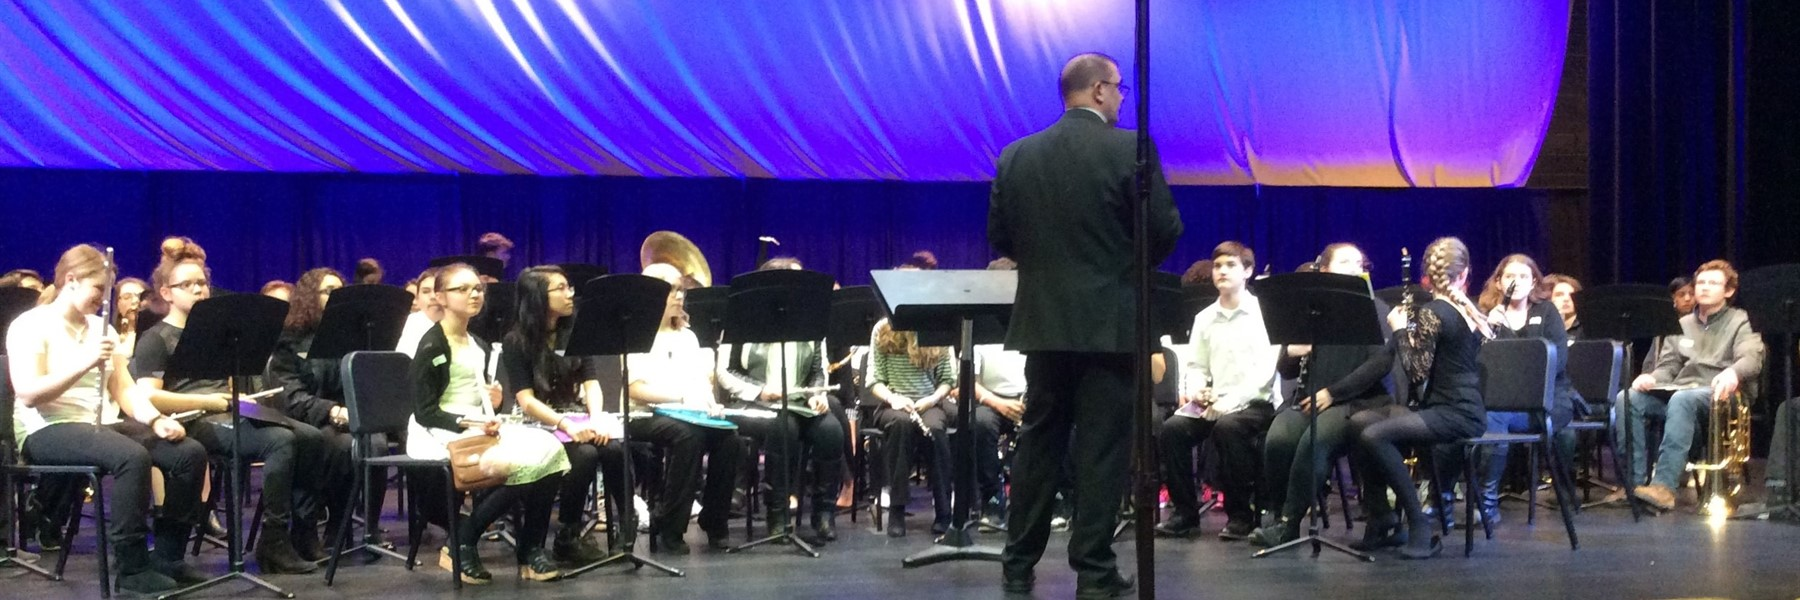 GMS 7th & 8th grade band receives DIstinguished rating at KMEA assessment  for the 6th year in a row.